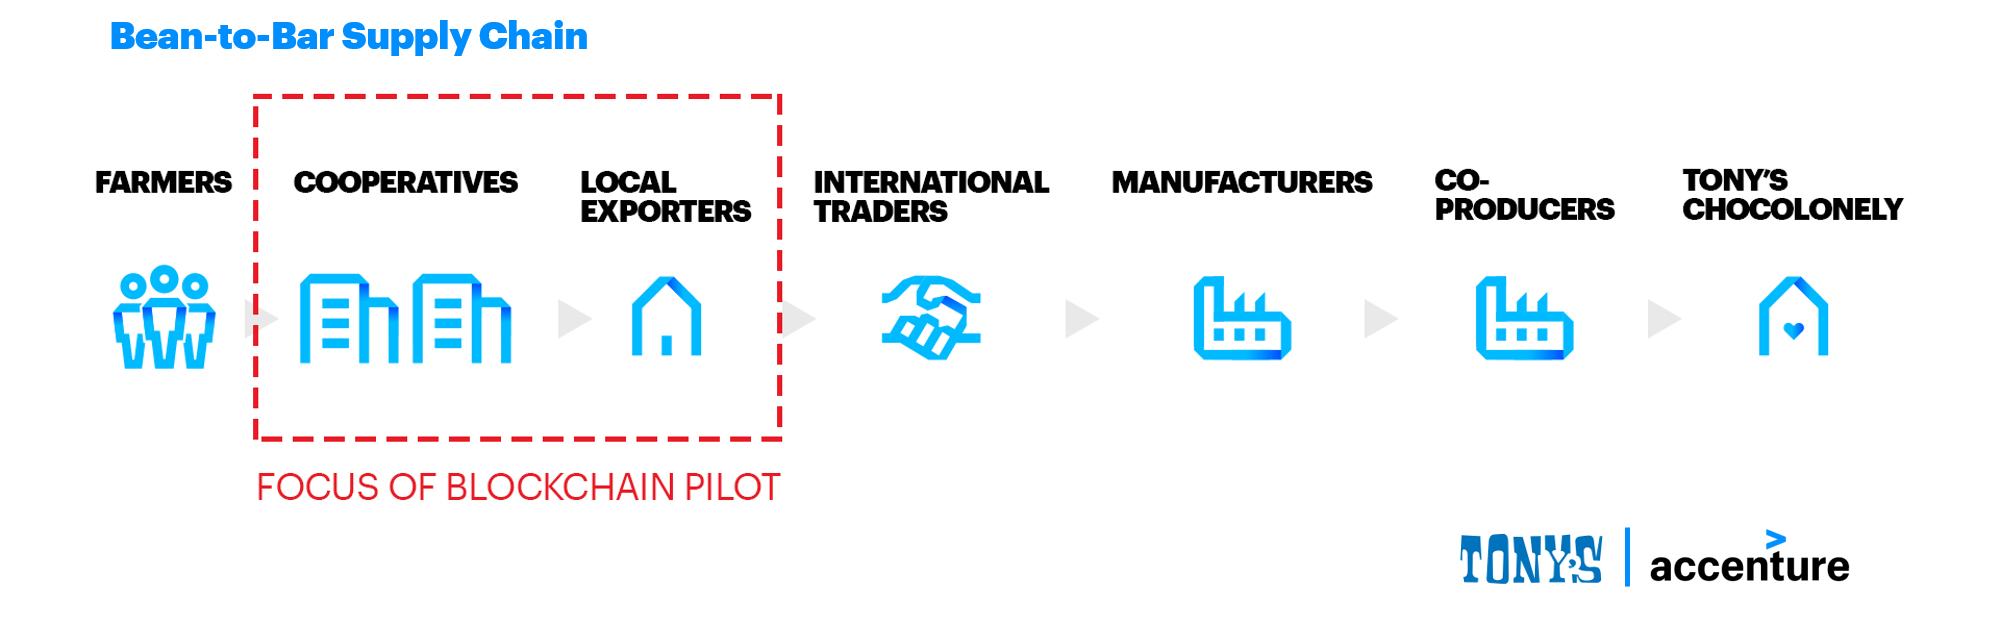 Blockchain in the Supply Chain - Tony's Chocolonely - Cocoa Supply Chain Overview - by Accenture